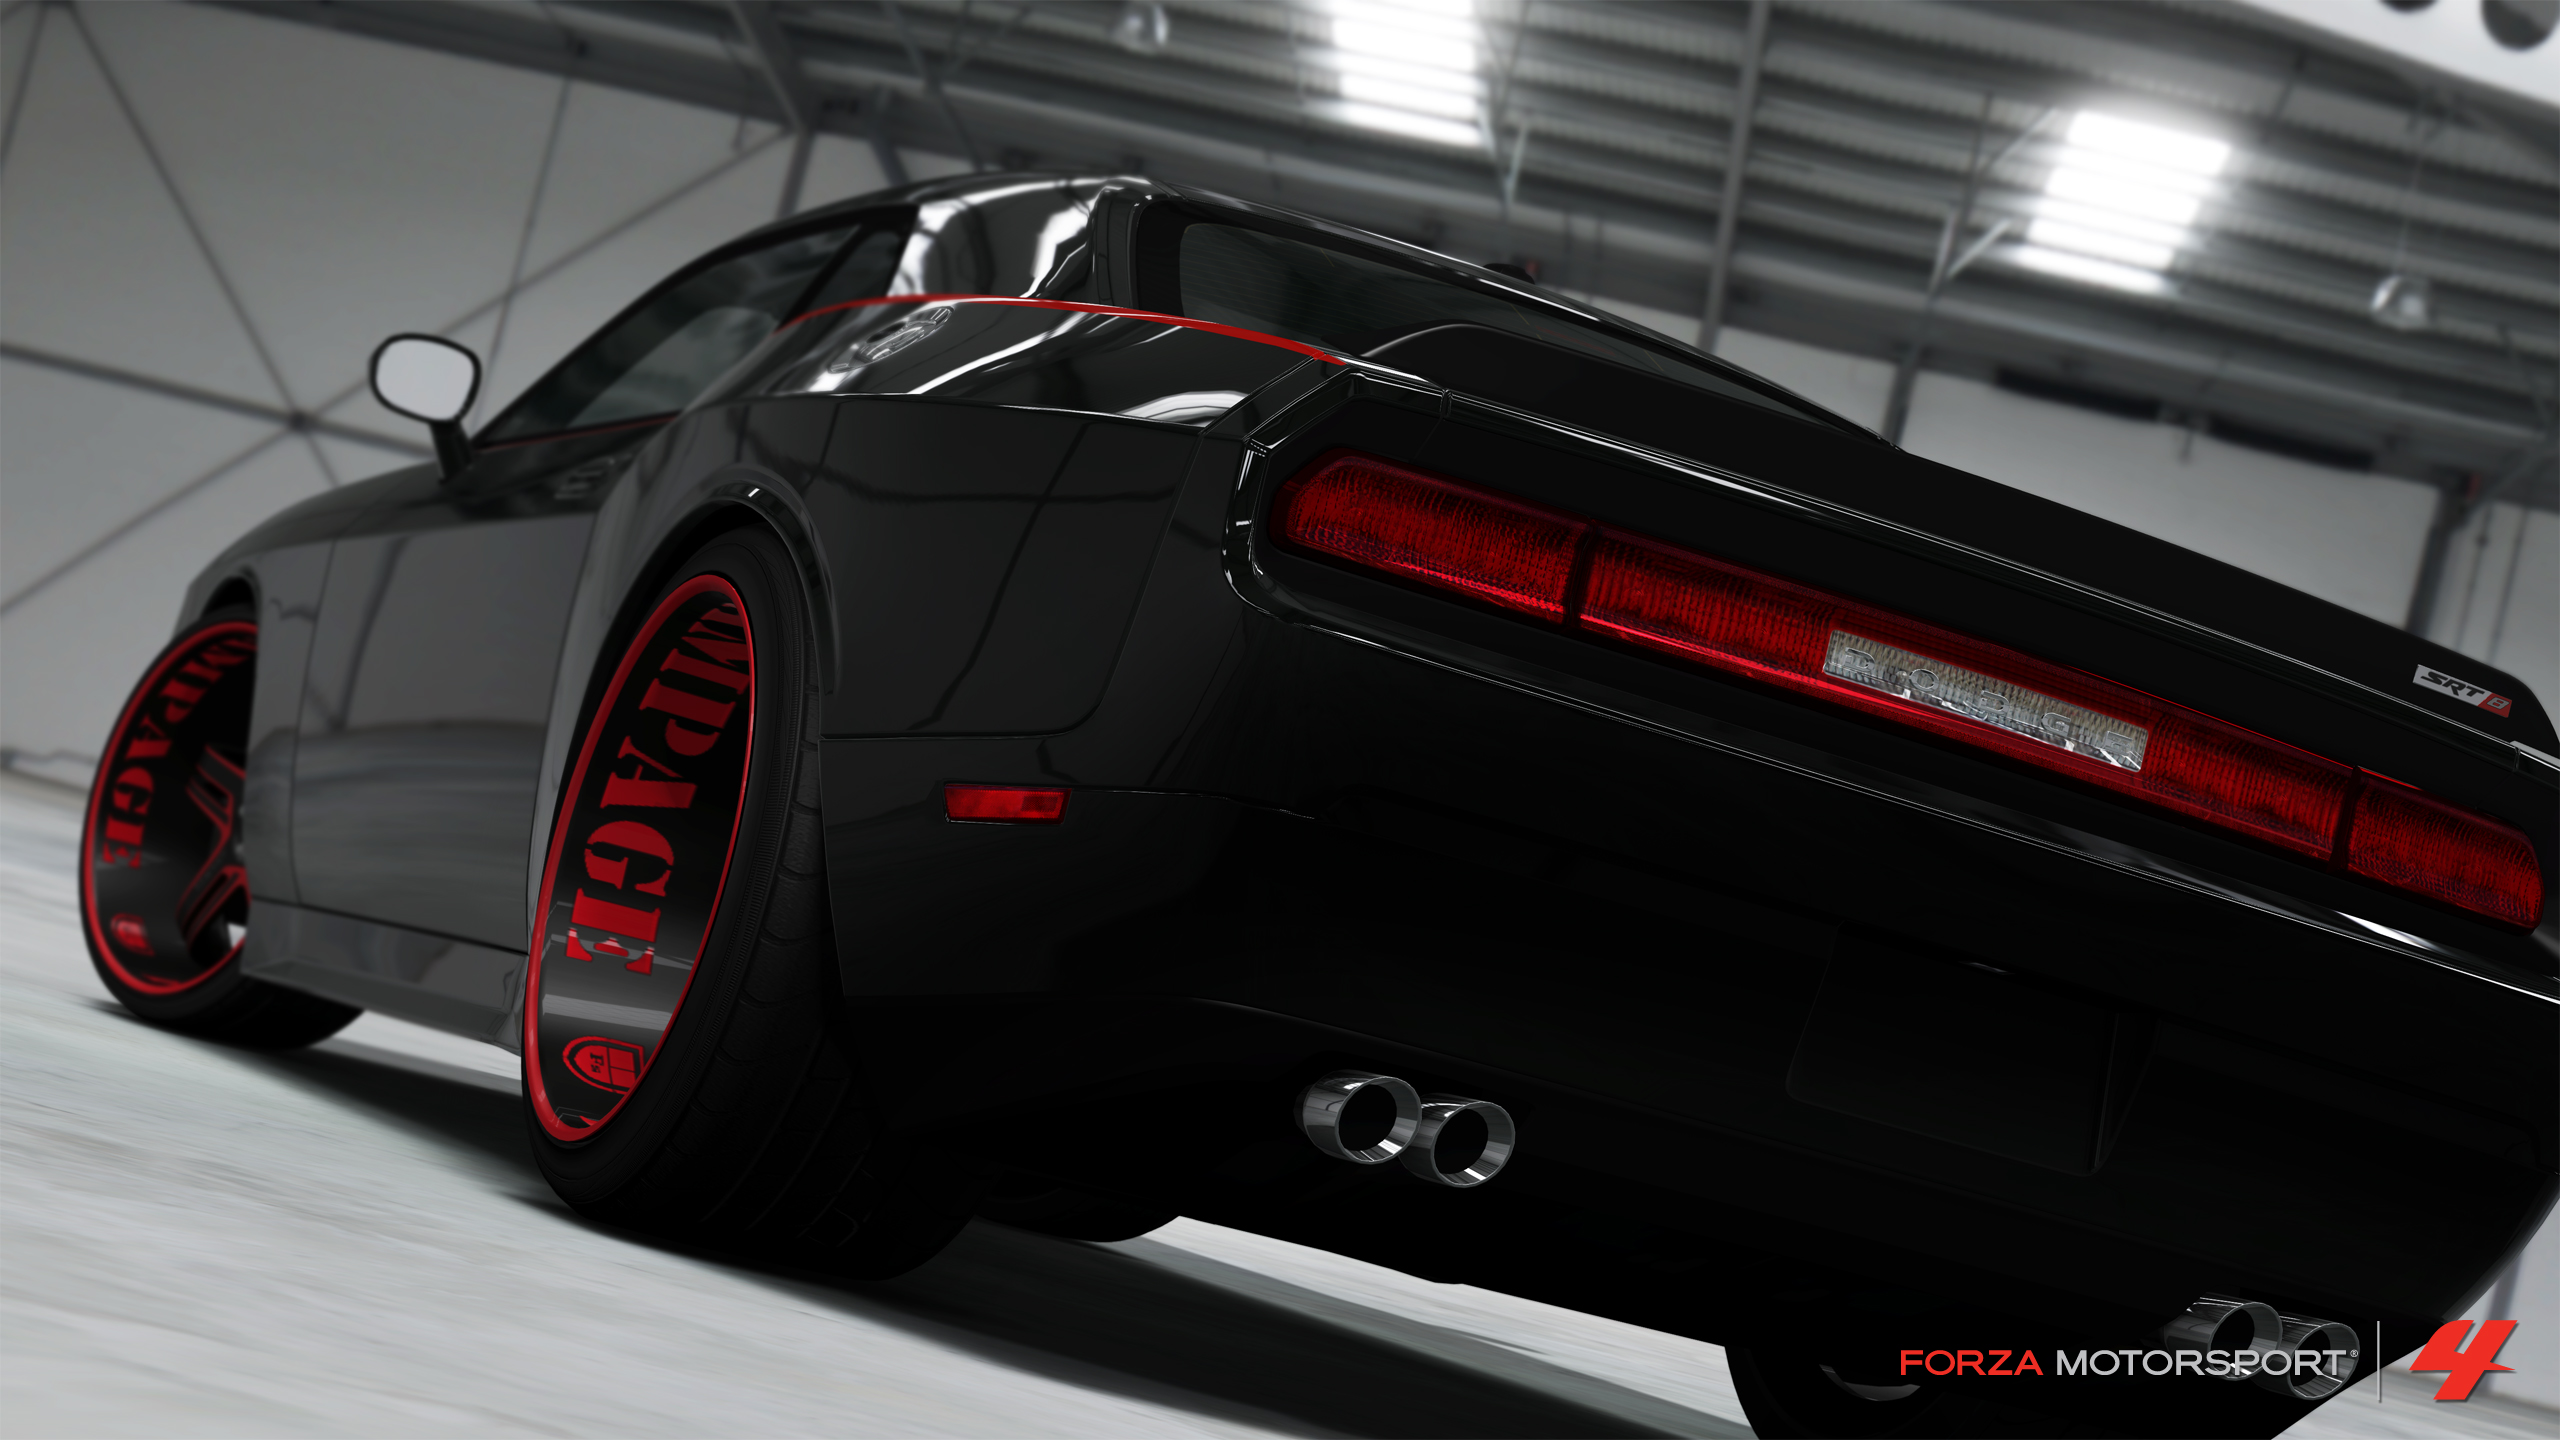 forza motorsport 4 pc download free full version